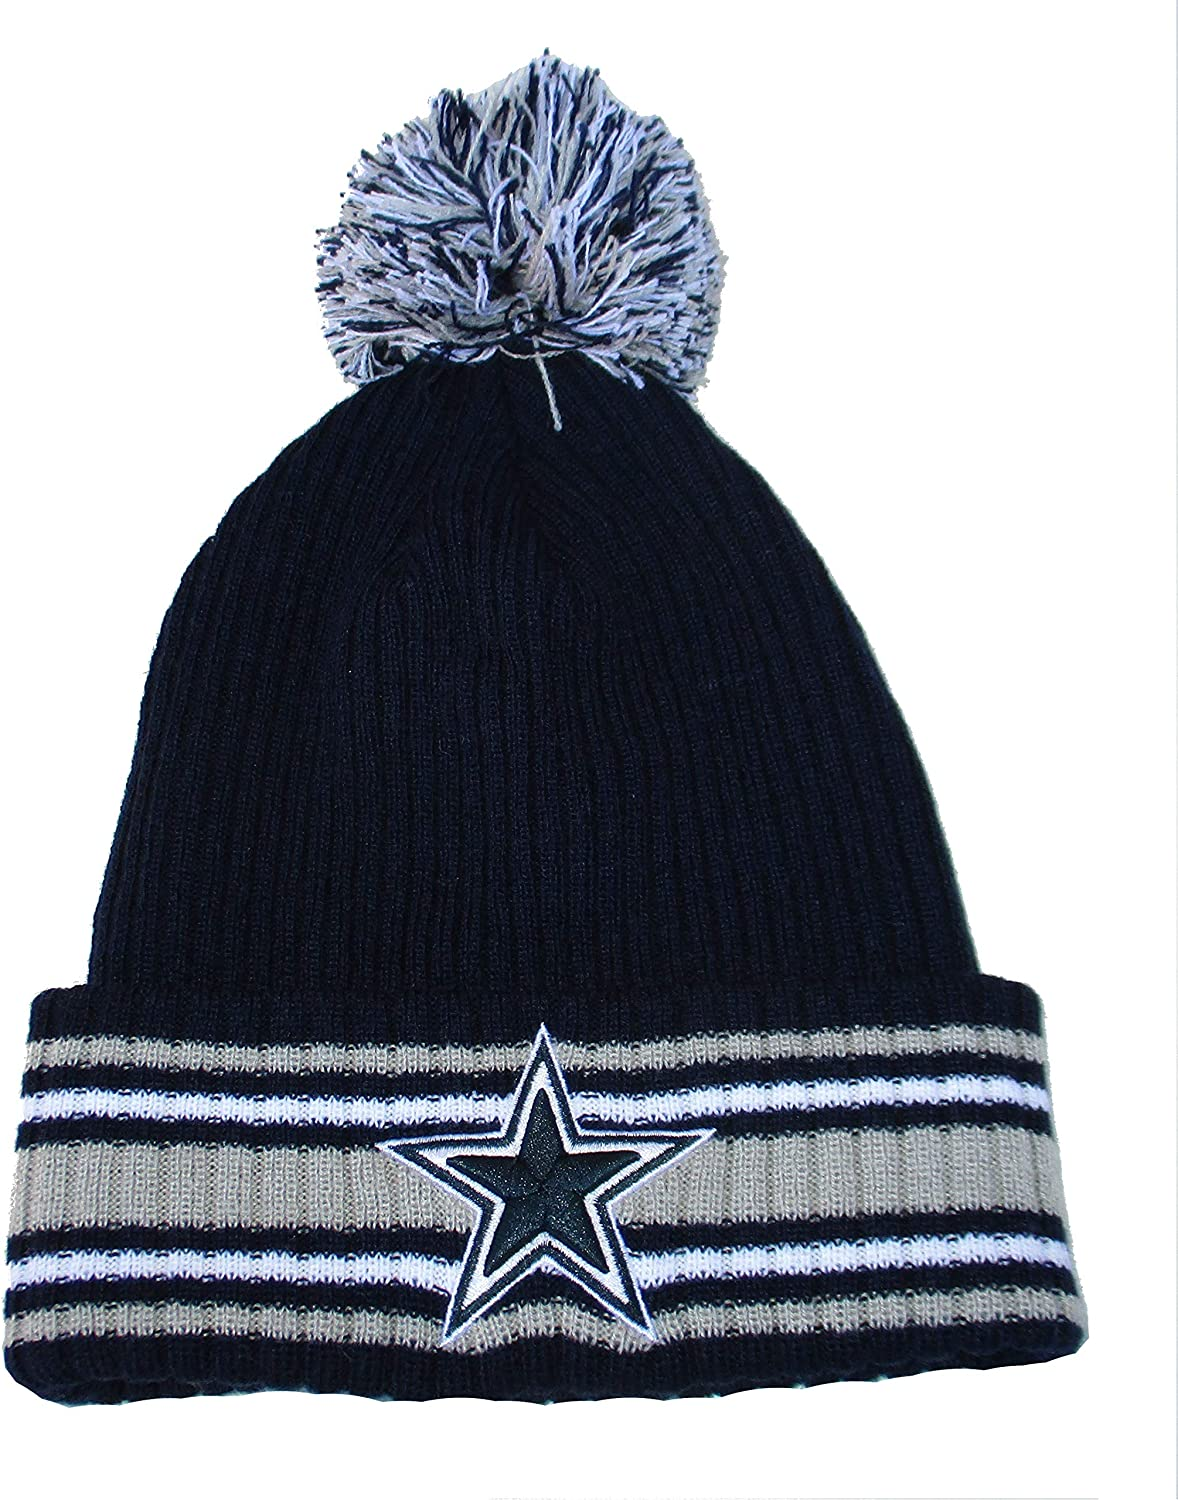 Dallas Cowboys Knit Star Logo Pom Beanie One Size Hat Cap Navy and Gray